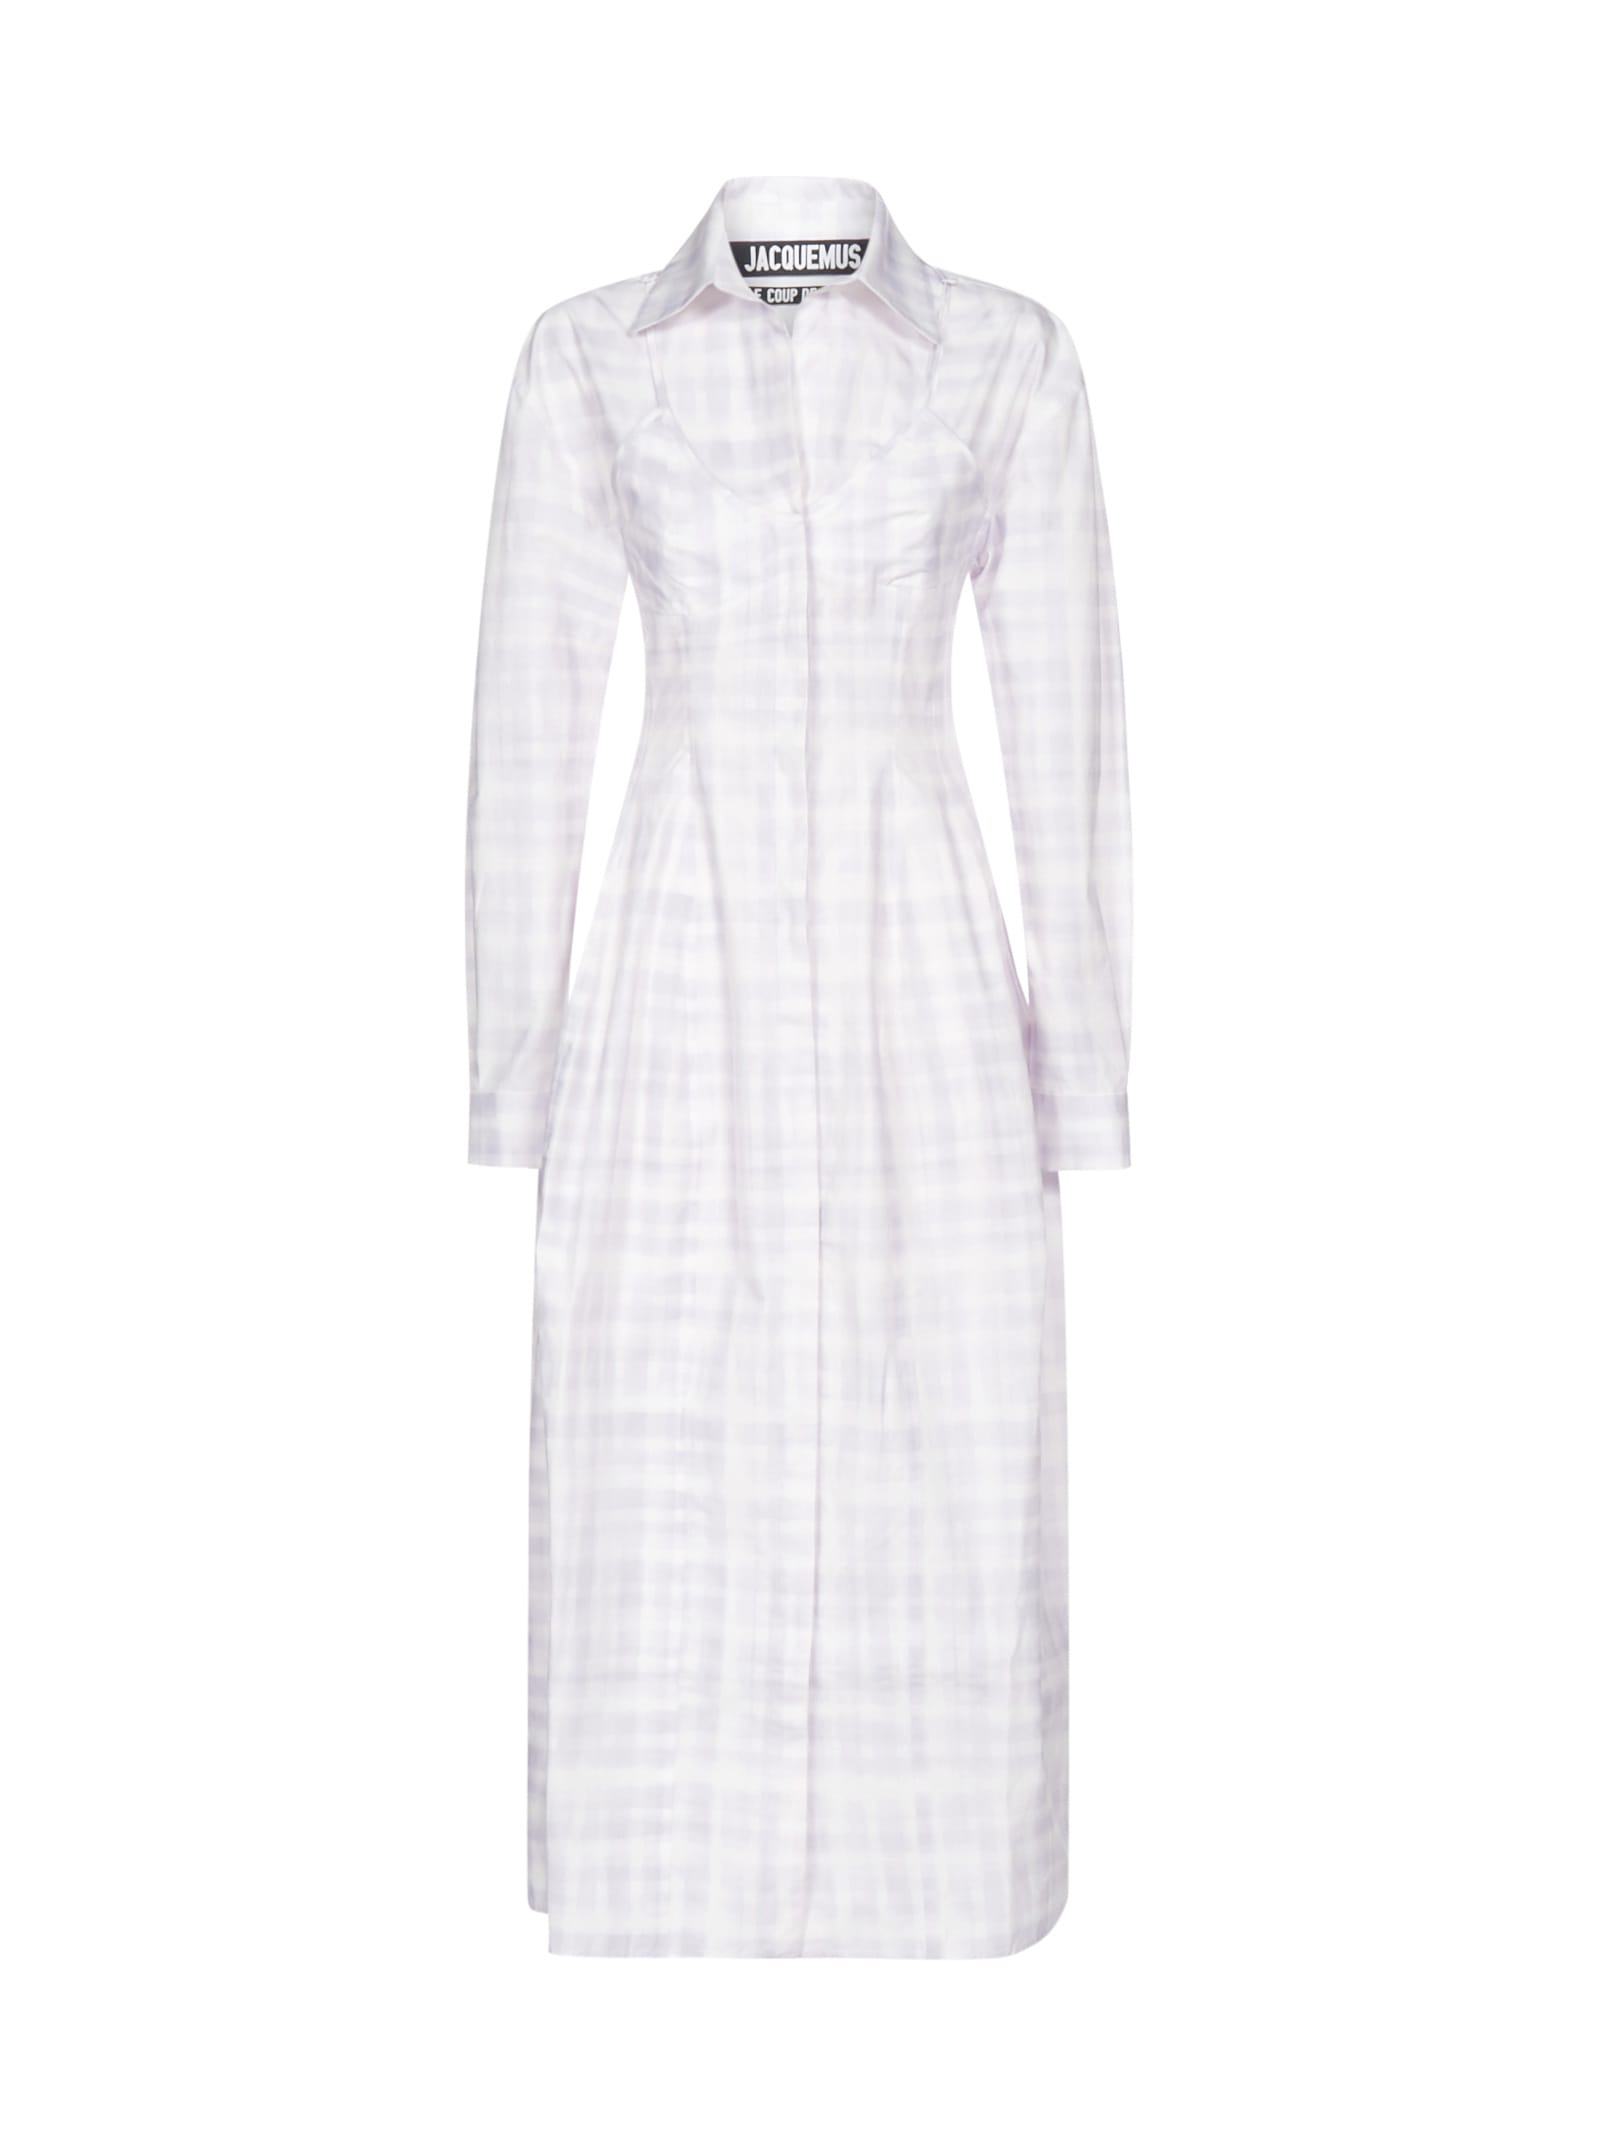 JACQUEMUS LA ROBE VALENSOLE DRESS